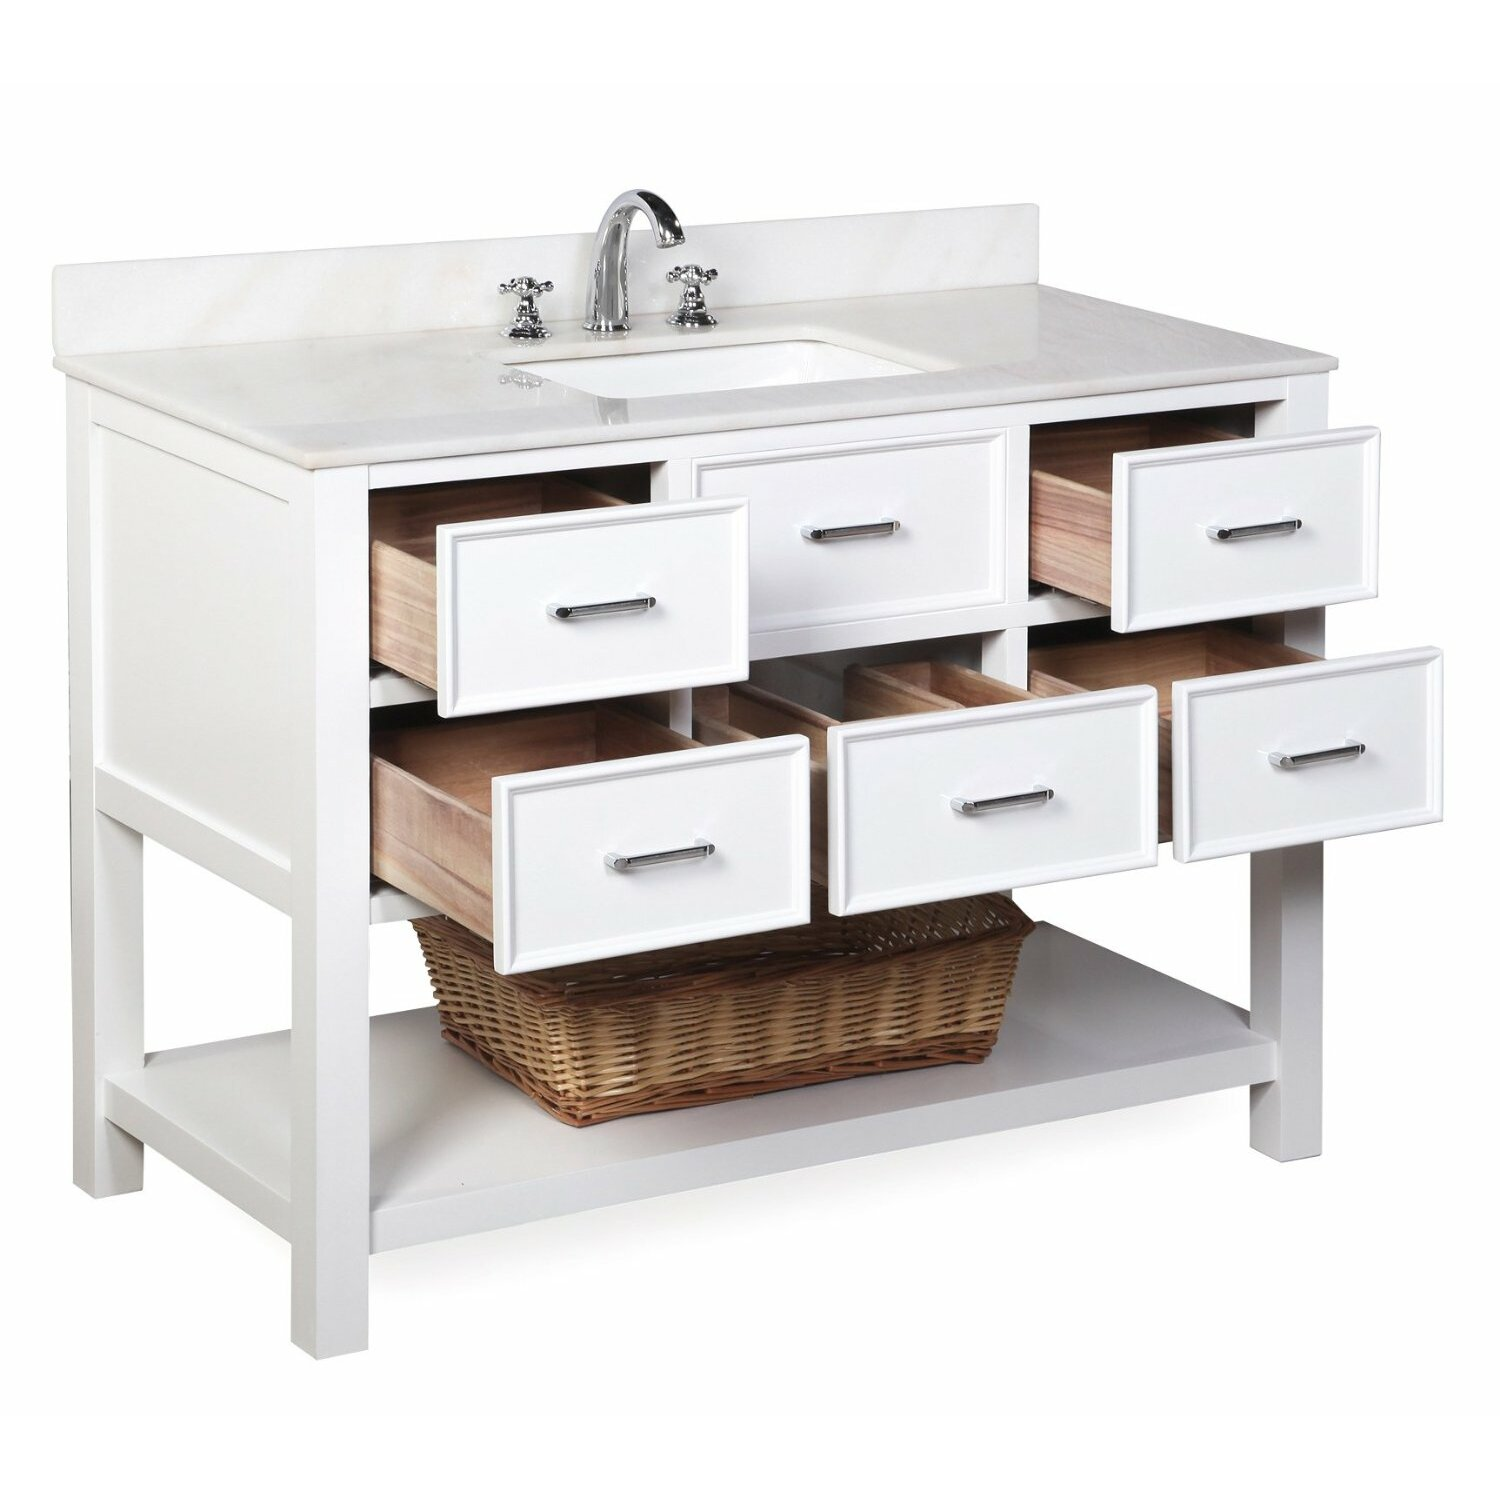 Kbc new hampshire 48 single bathroom vanity set reviews for Bath and vanity set